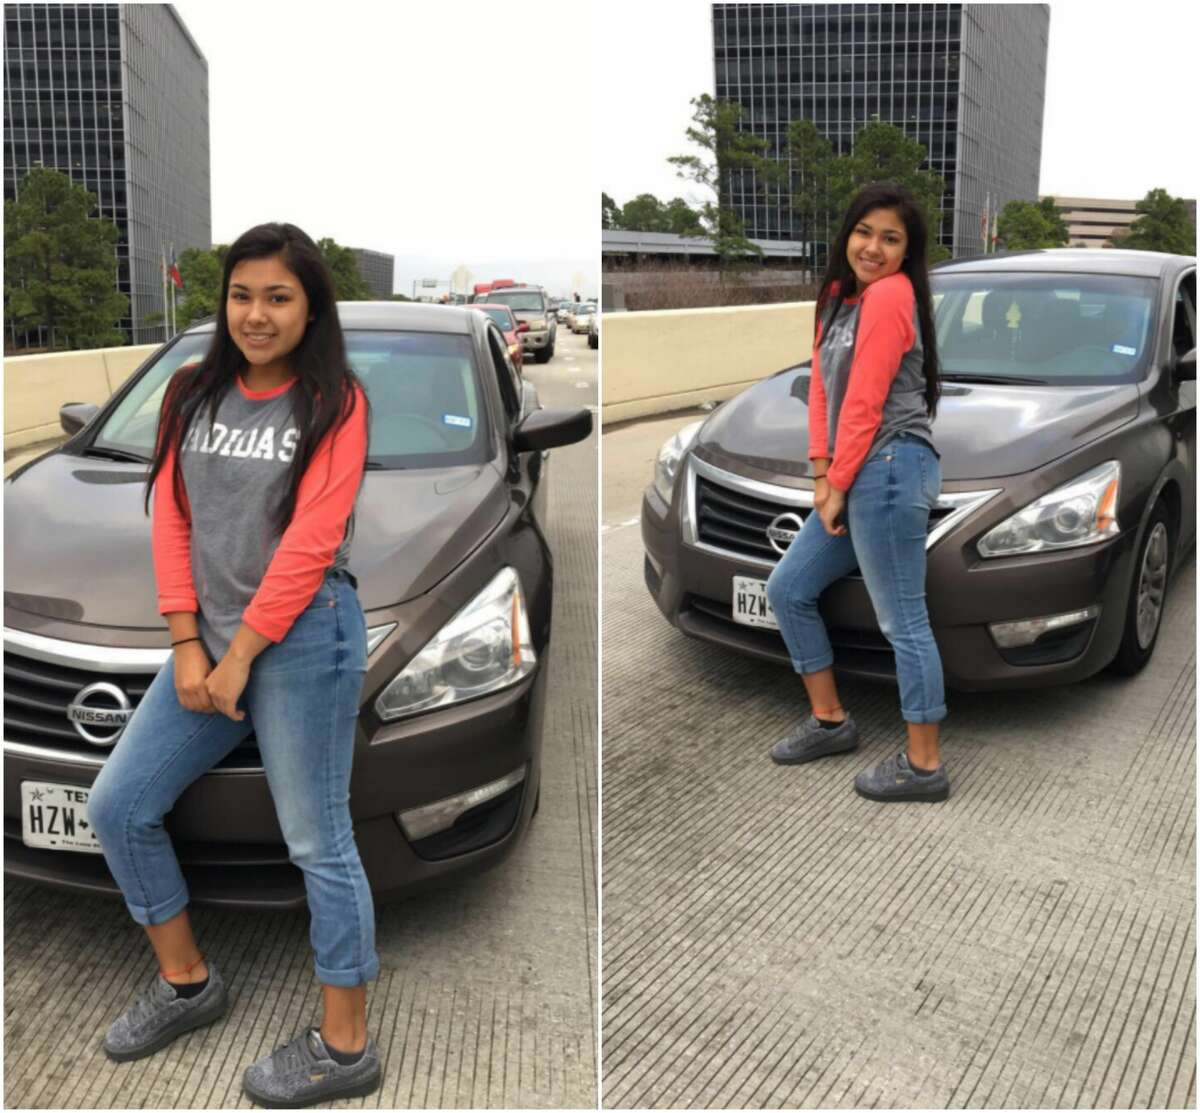 A Houston teenager said a controversial image showing her posing in front of heavy traffic doesn't tell the full story. See Houston ZIP Codes with the worst and best commutes to work.